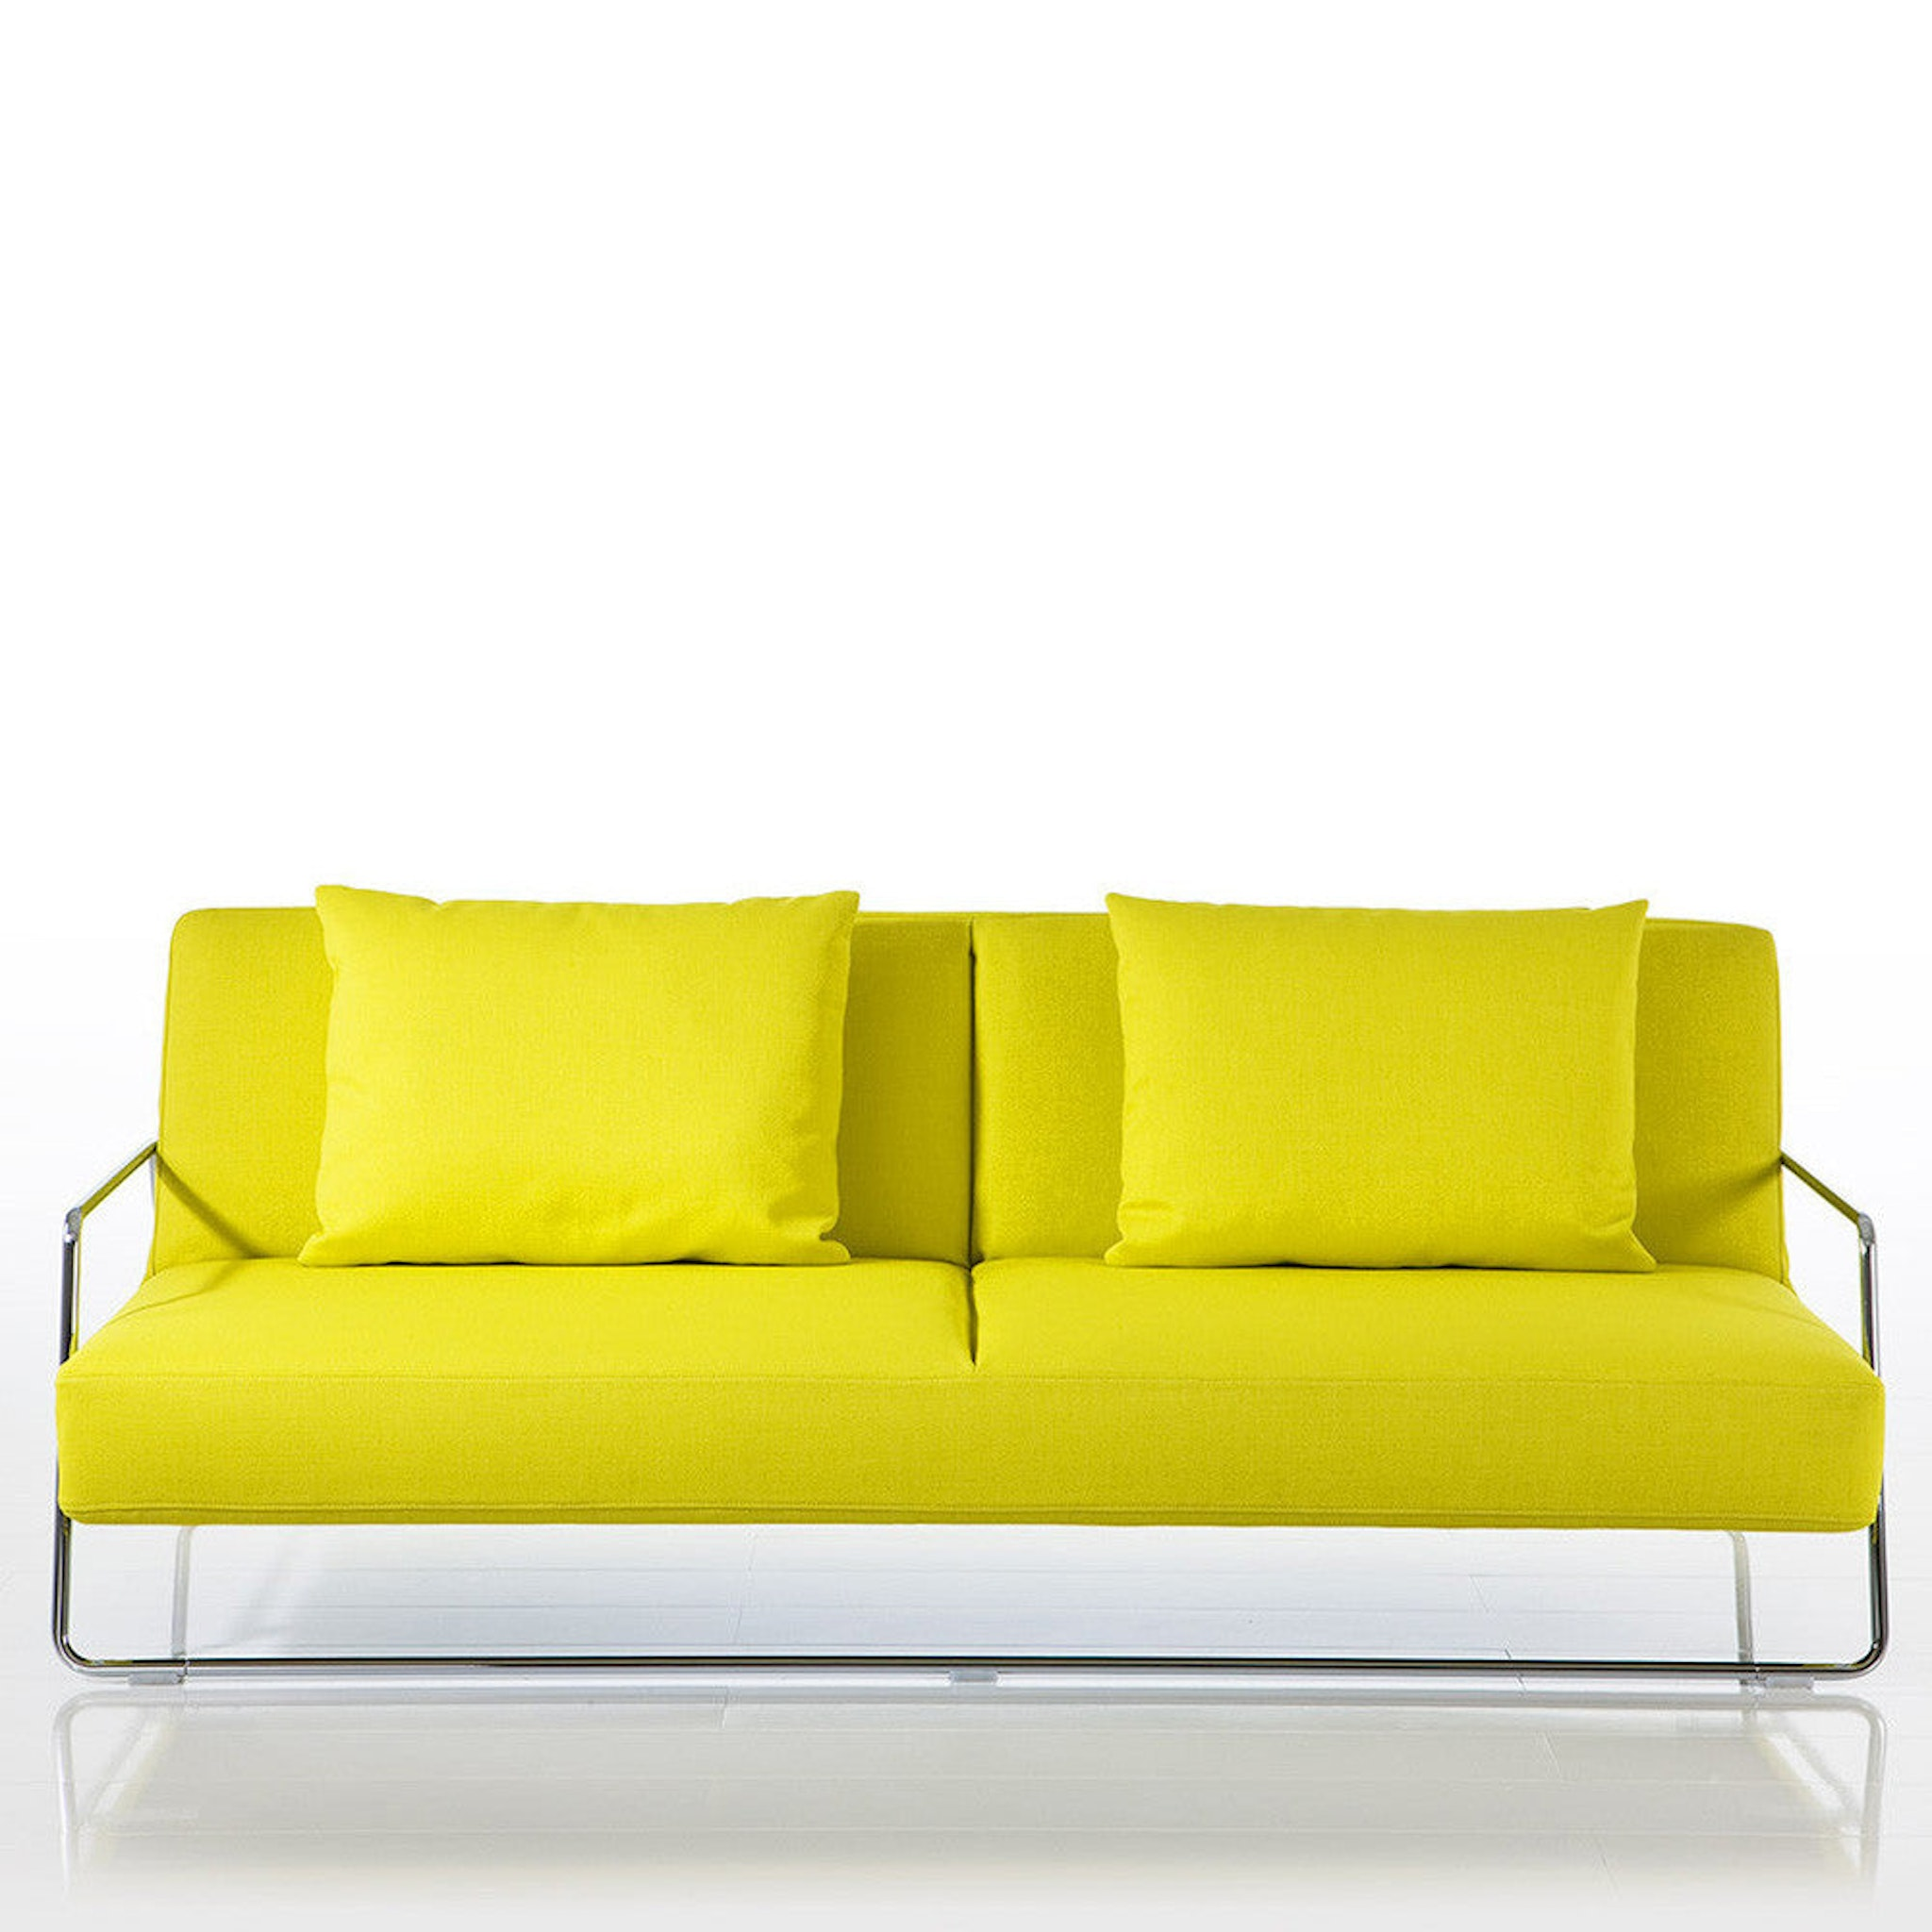 Square Sofa Bed for Brühl